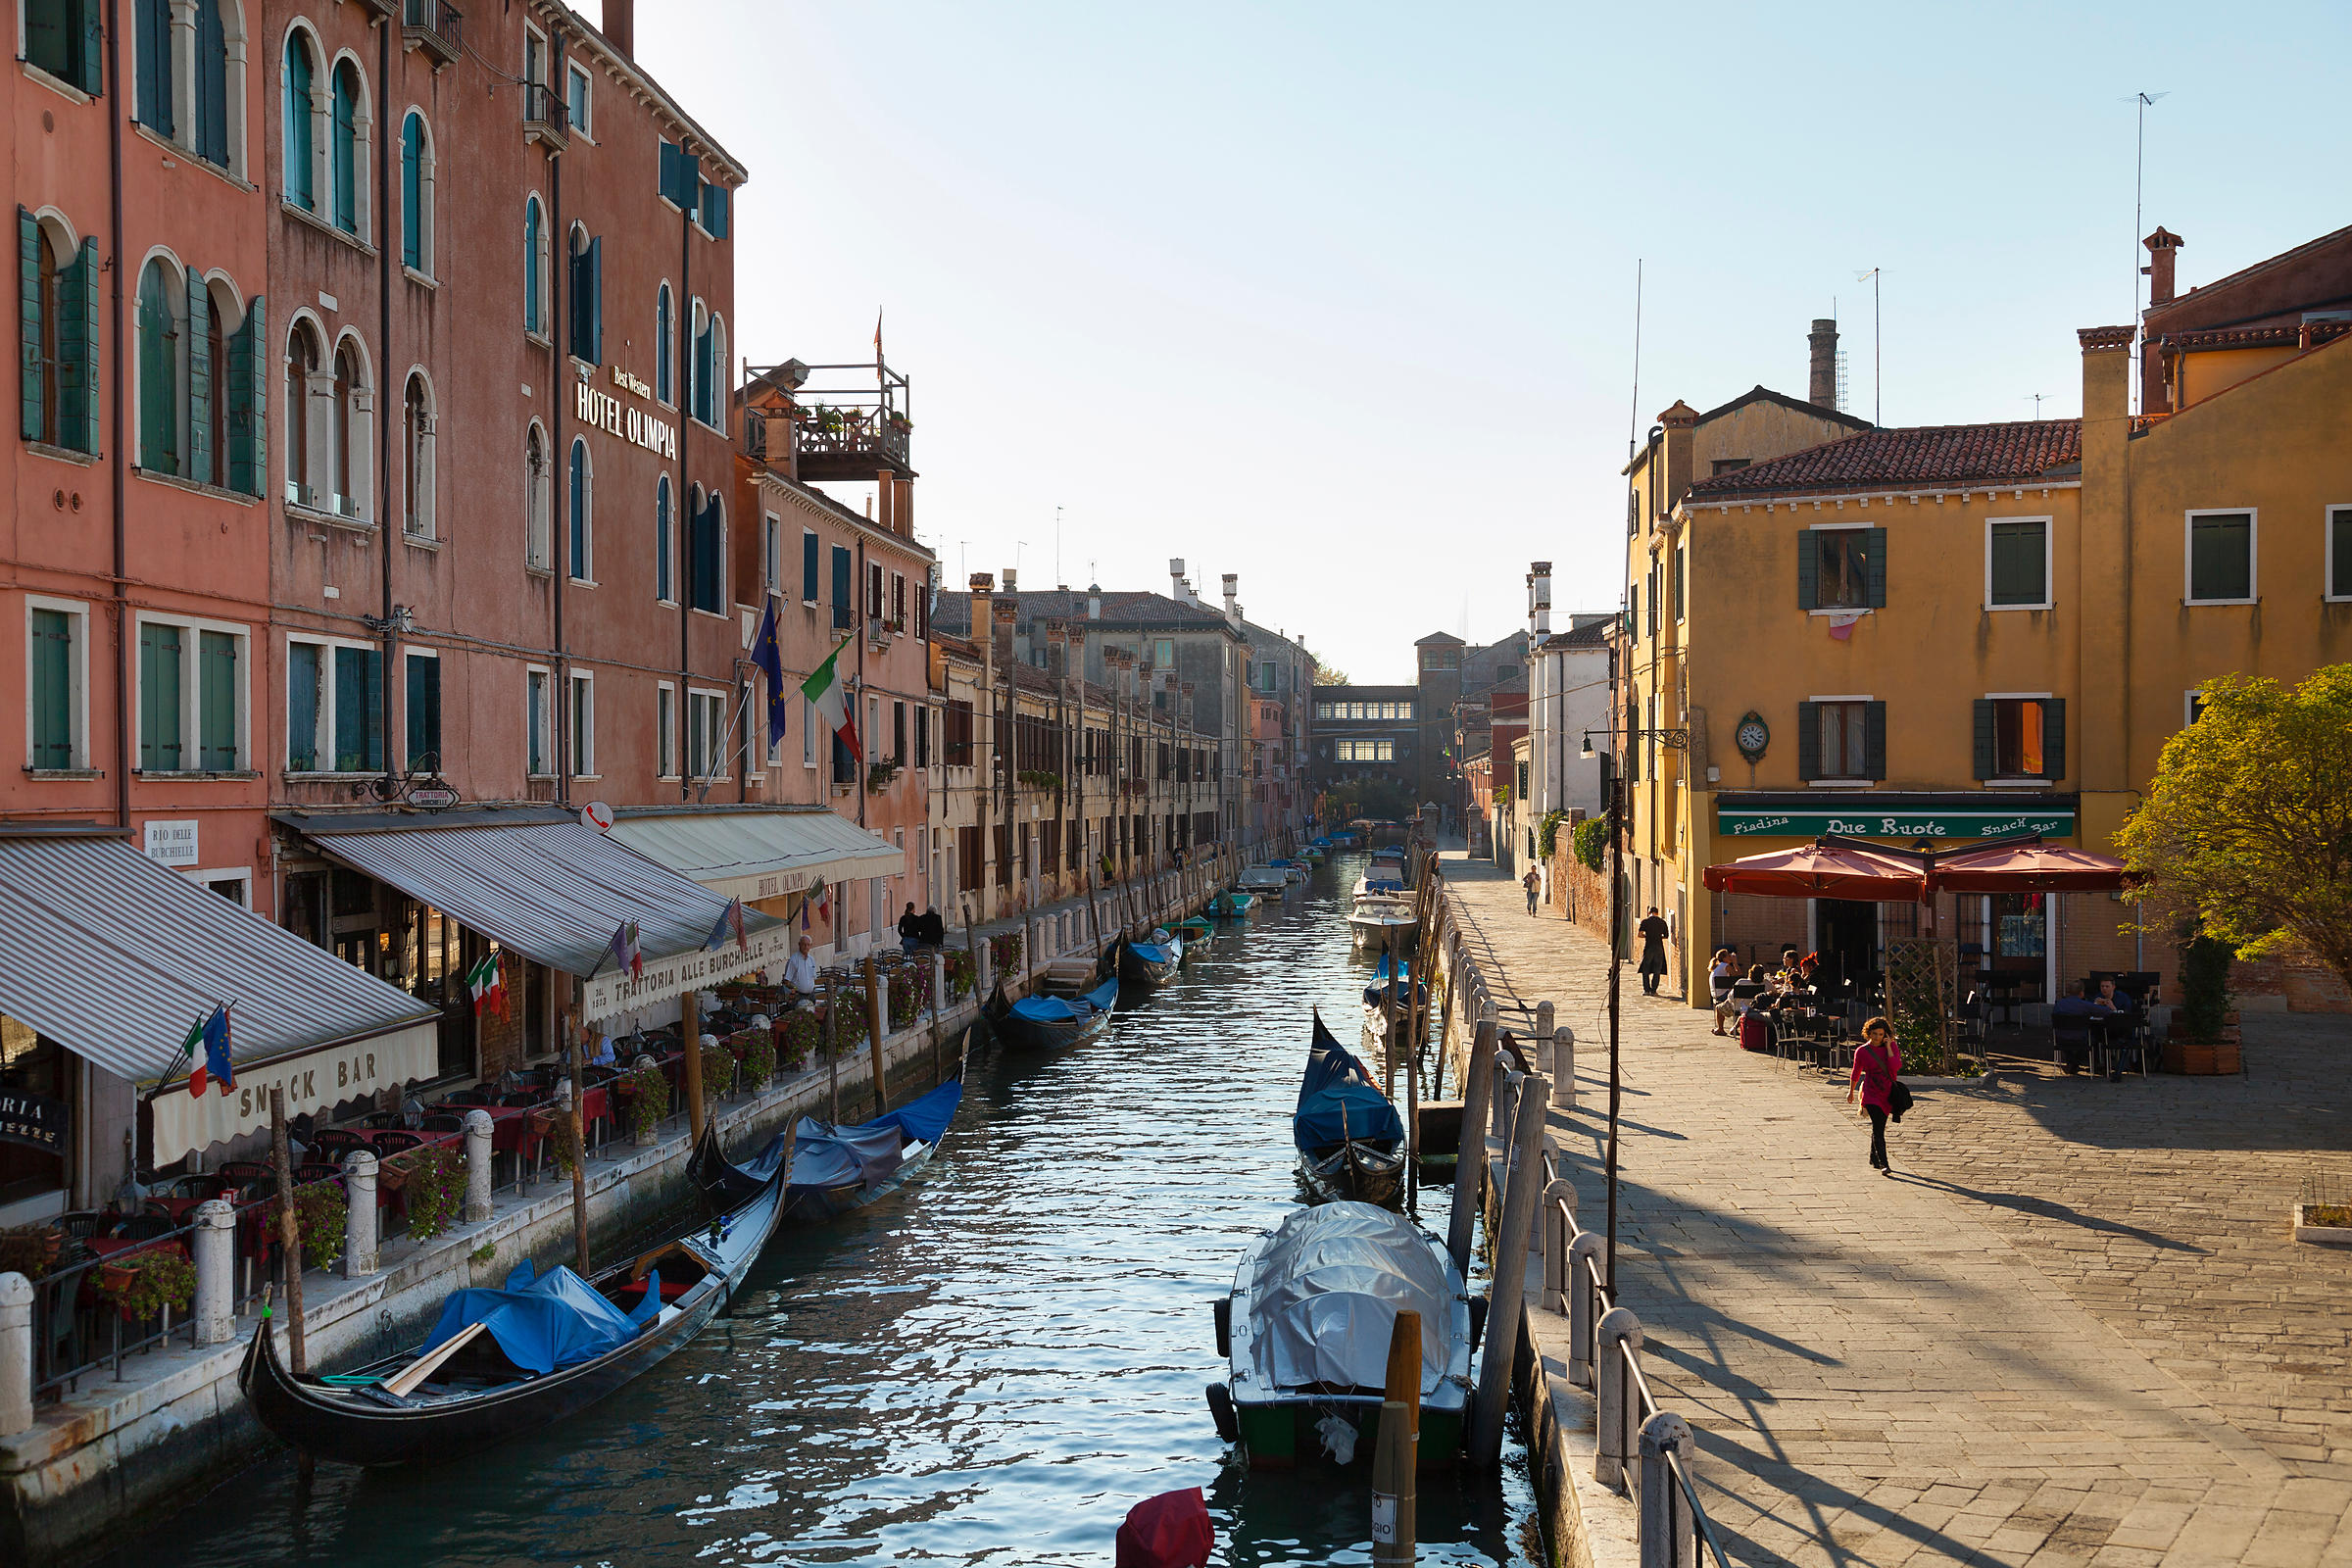 Italy, Venice, Dorsoduro, View of city near canal